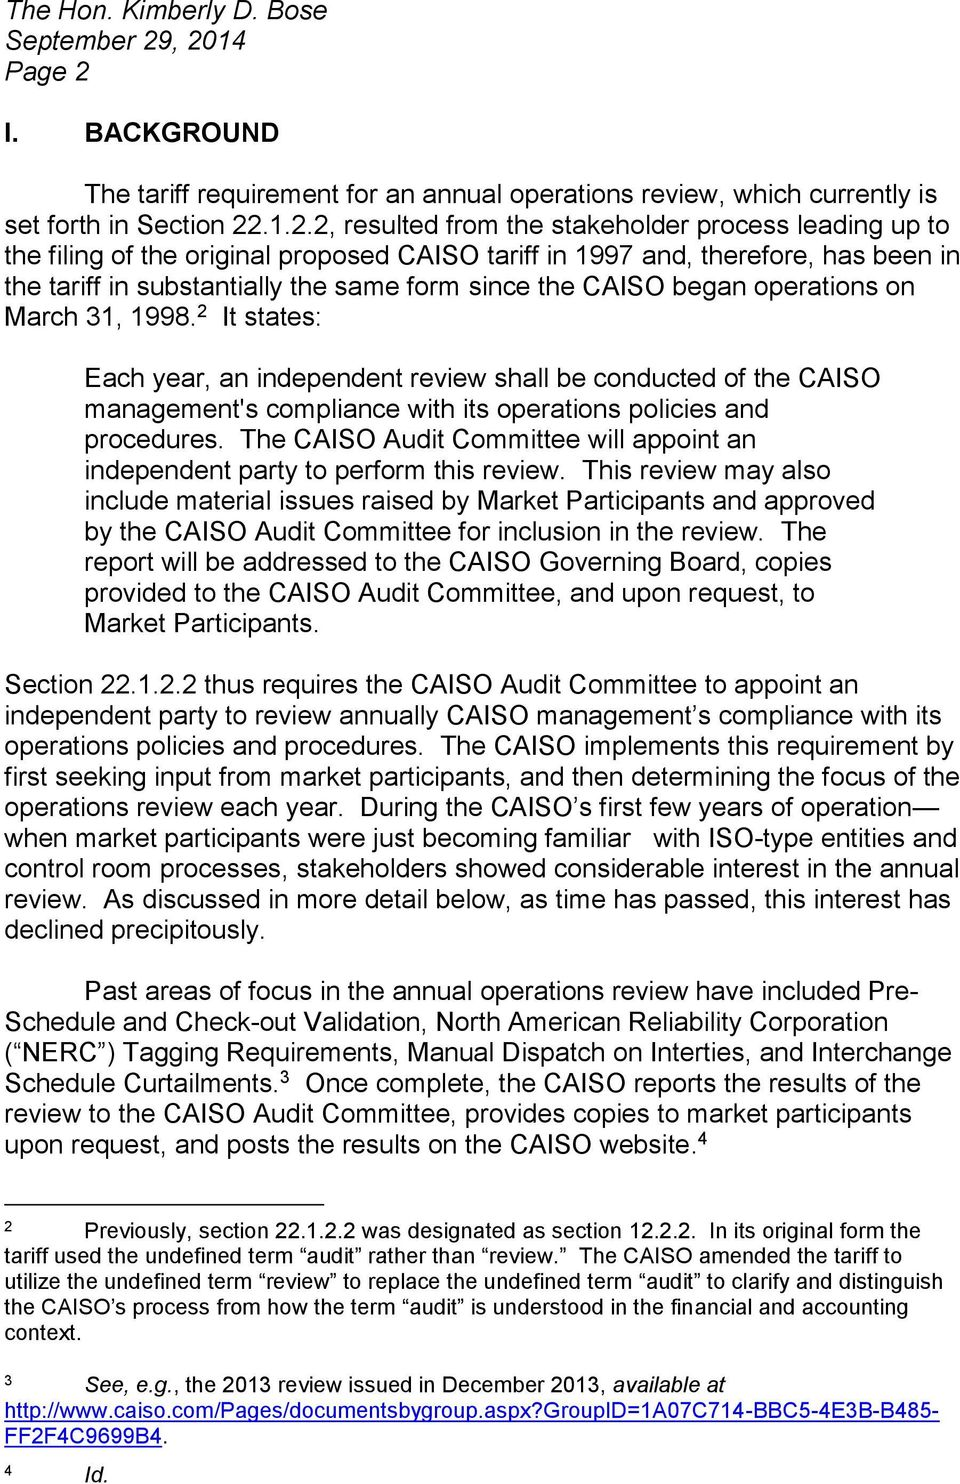 the original proposed CAISO tariff in 1997 and, therefore, has been in the tariff in substantially the same form since the CAISO began operations on March 31, 1998.